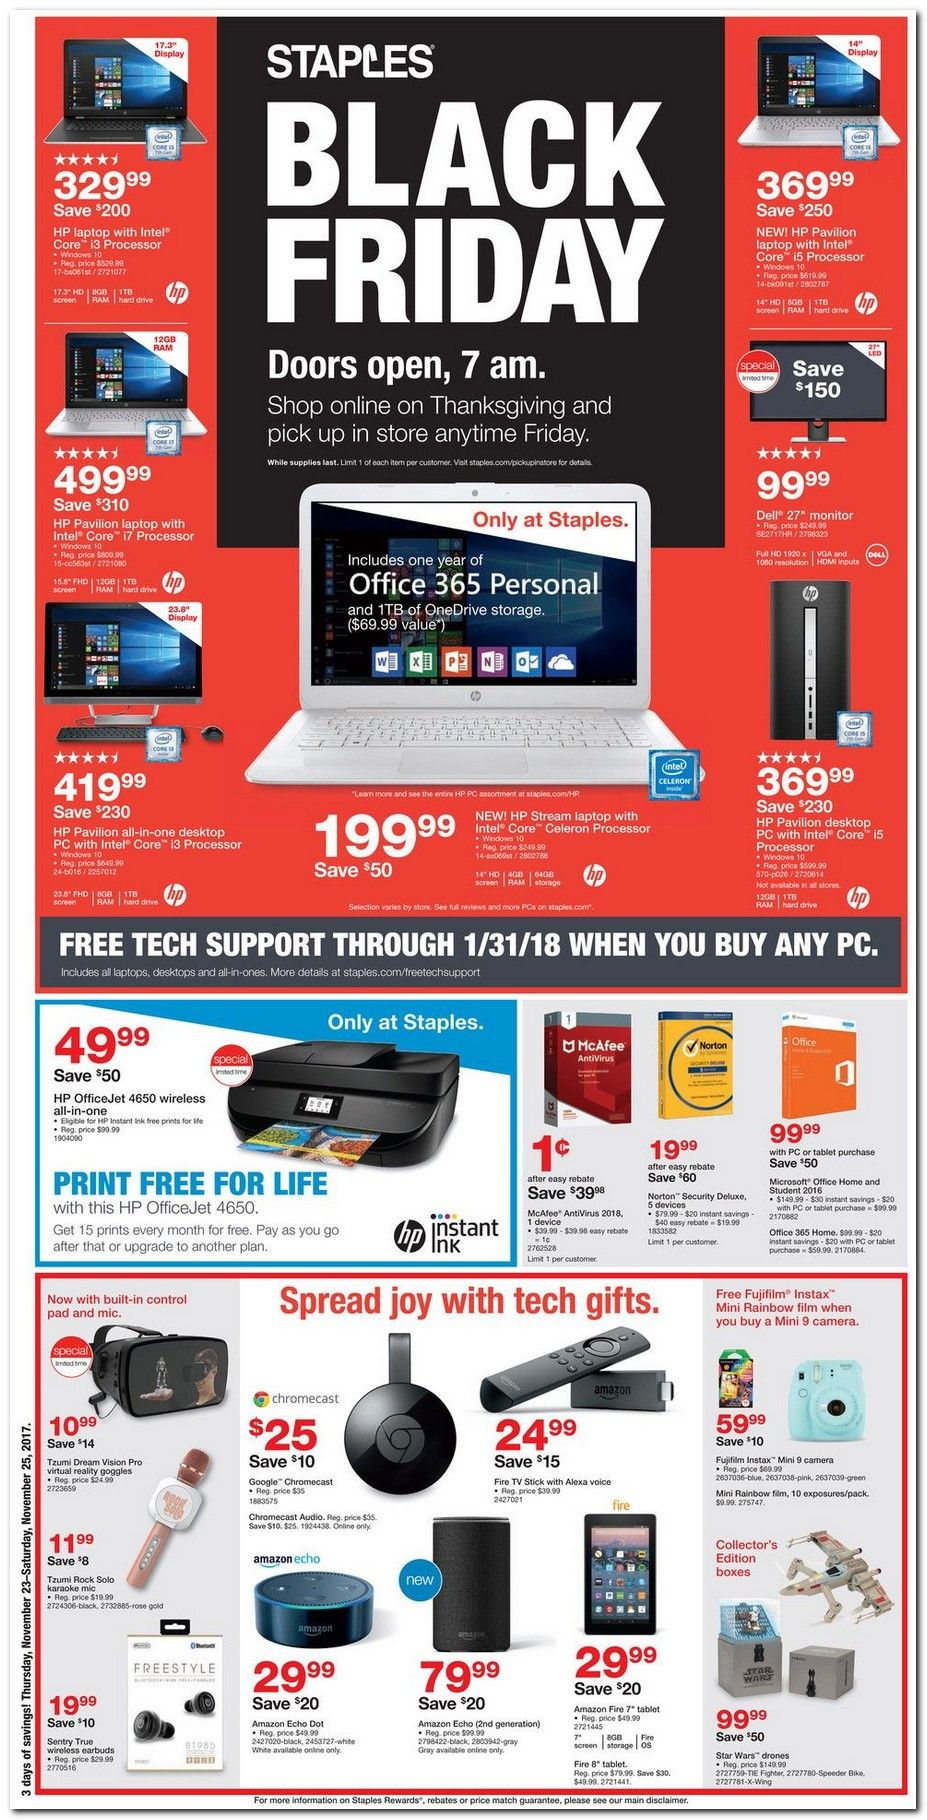 Staples Black Friday 2018 Ads and Deals Browse the Staples